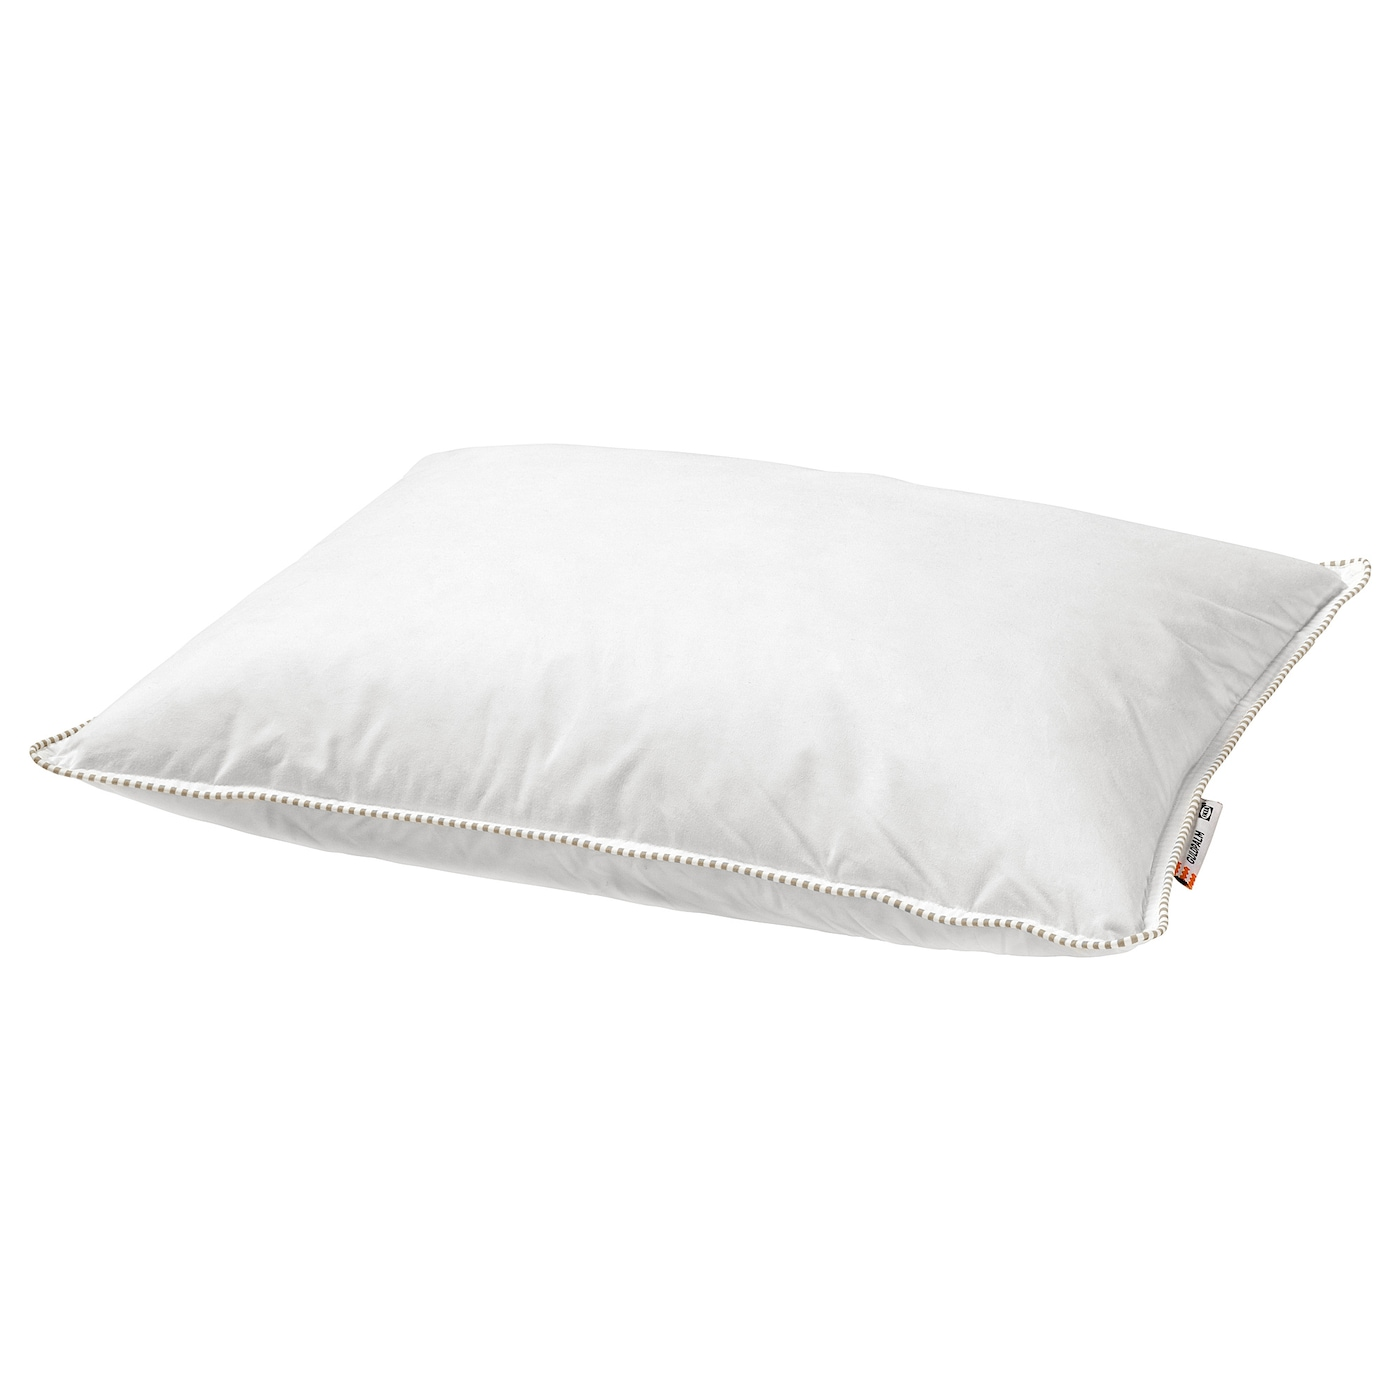 IKEA GULDPALM pillow, softer A soft pillow in soft cotton, filled with duck down and feathers.